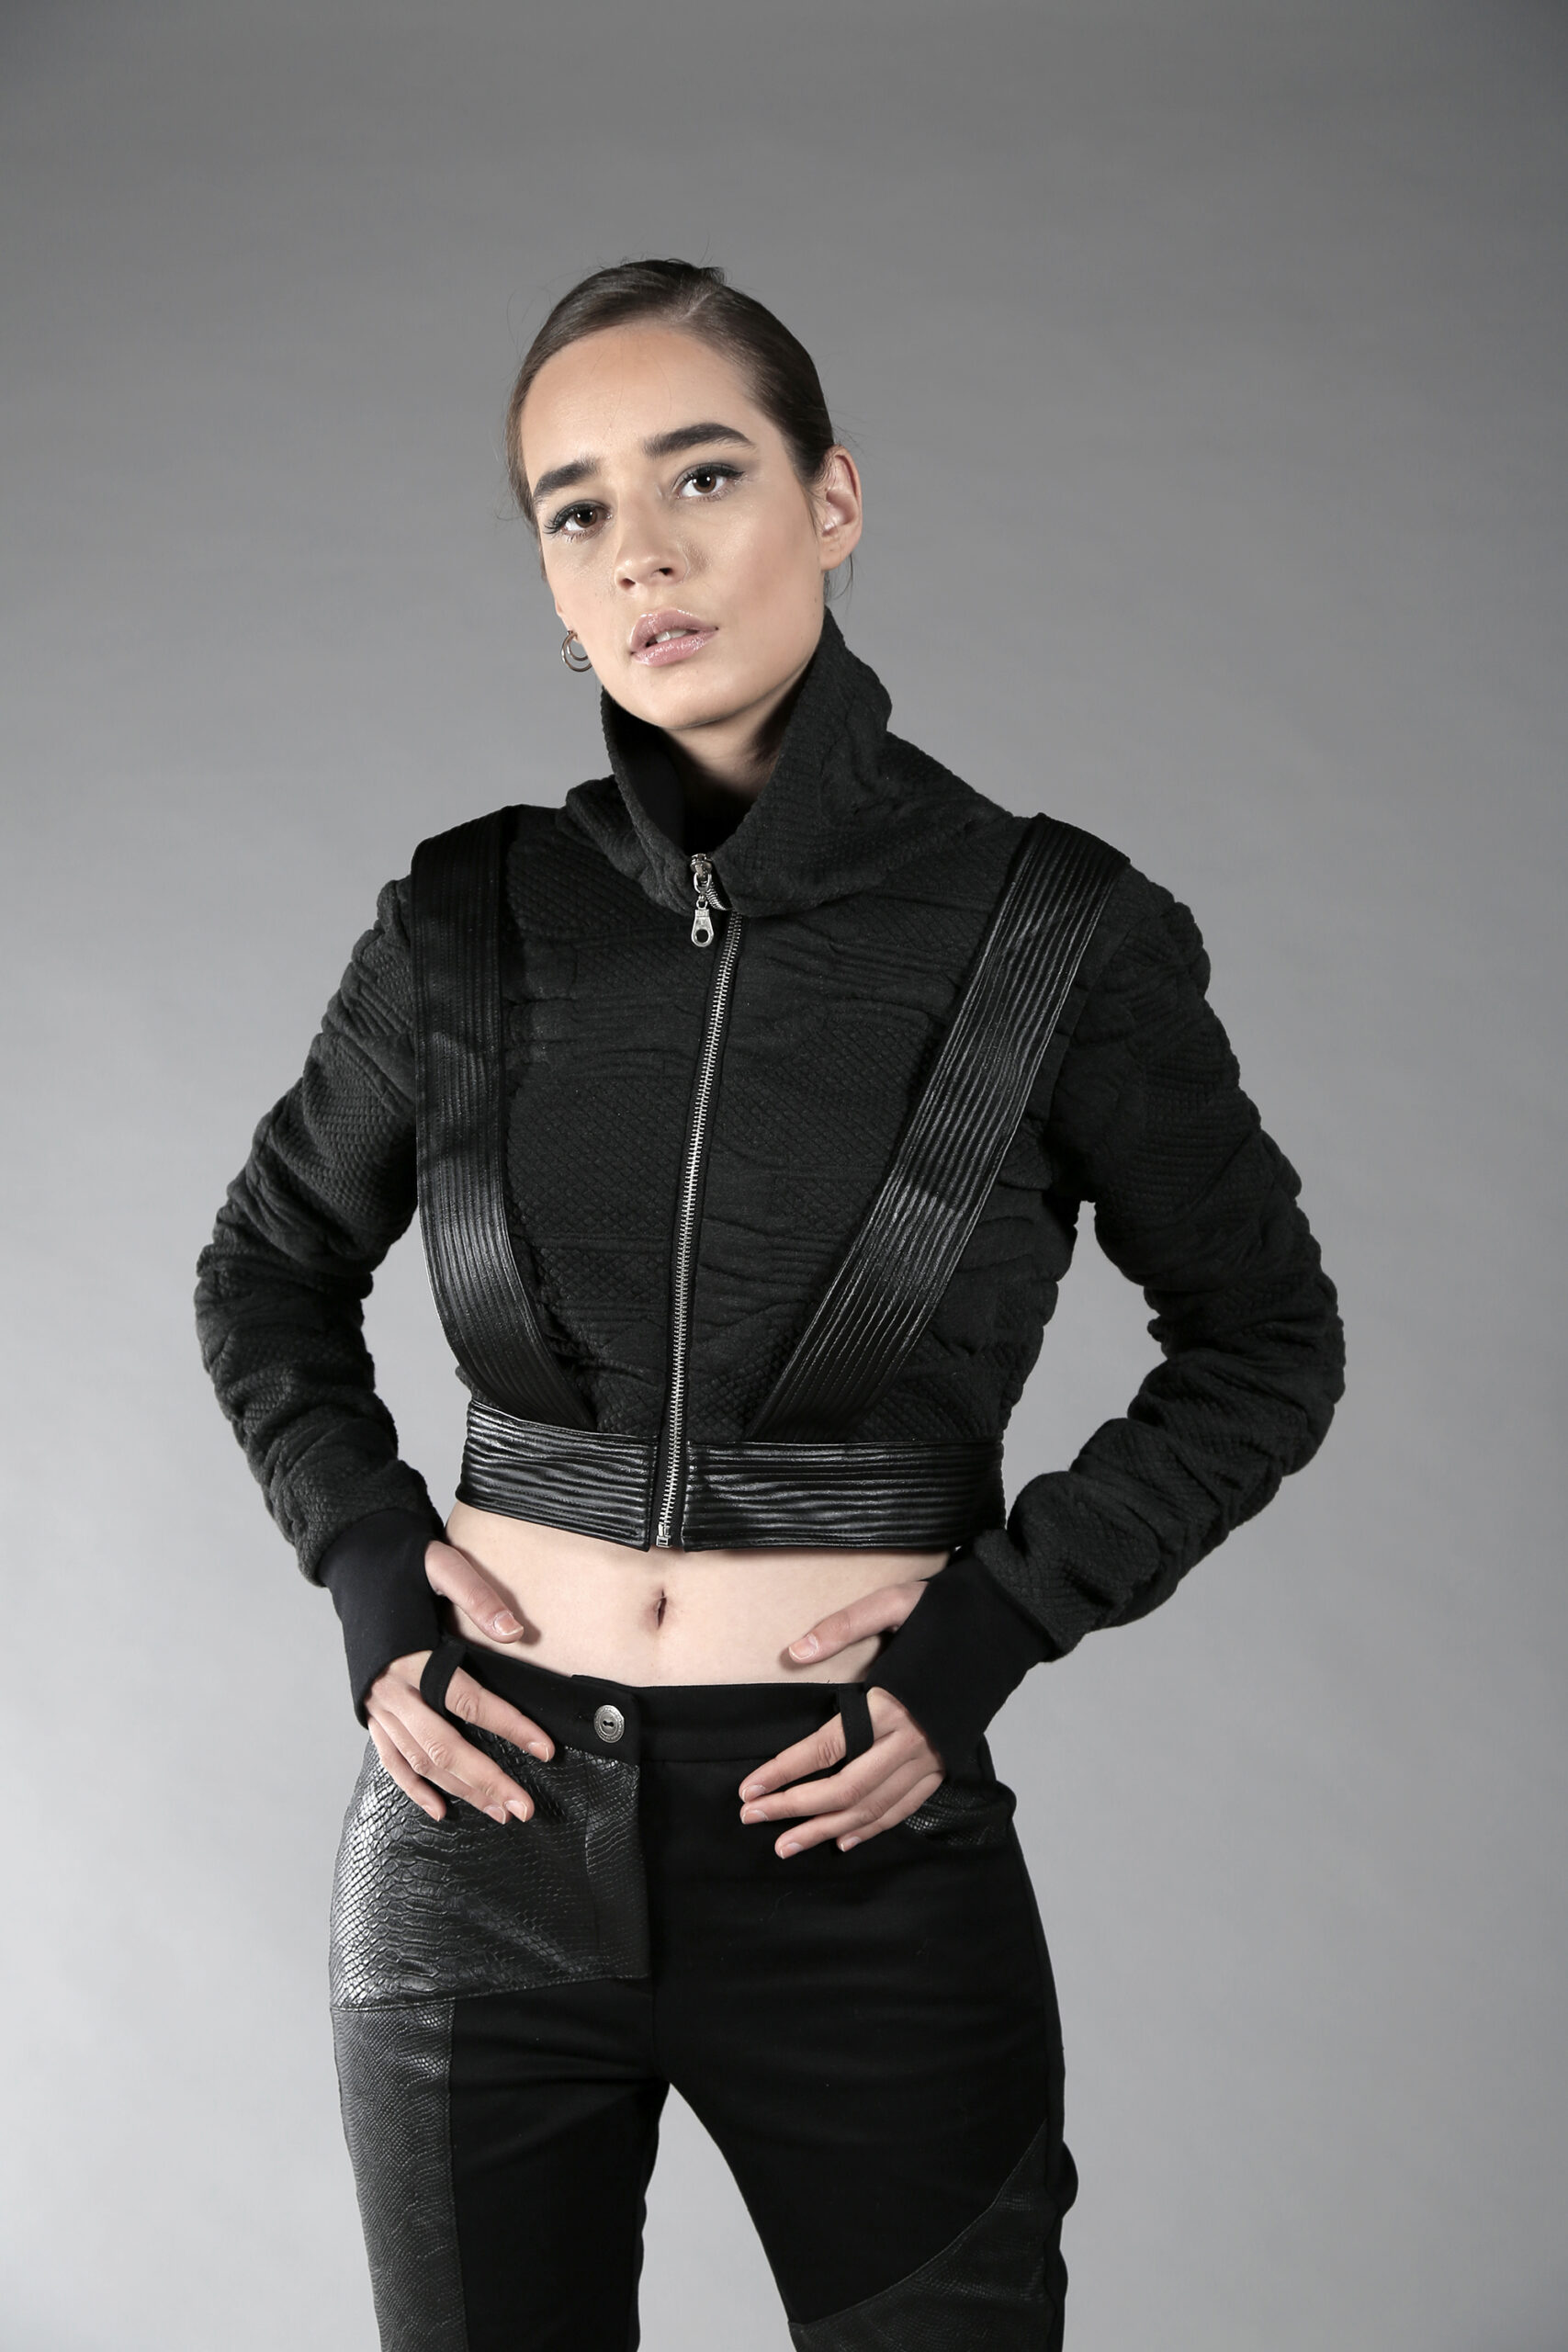 Dark Gray designed pattern short jacket. Thick one layer soft cotton, designed with fake leather stripes. No lining. High neck silver zipper, finger holes.